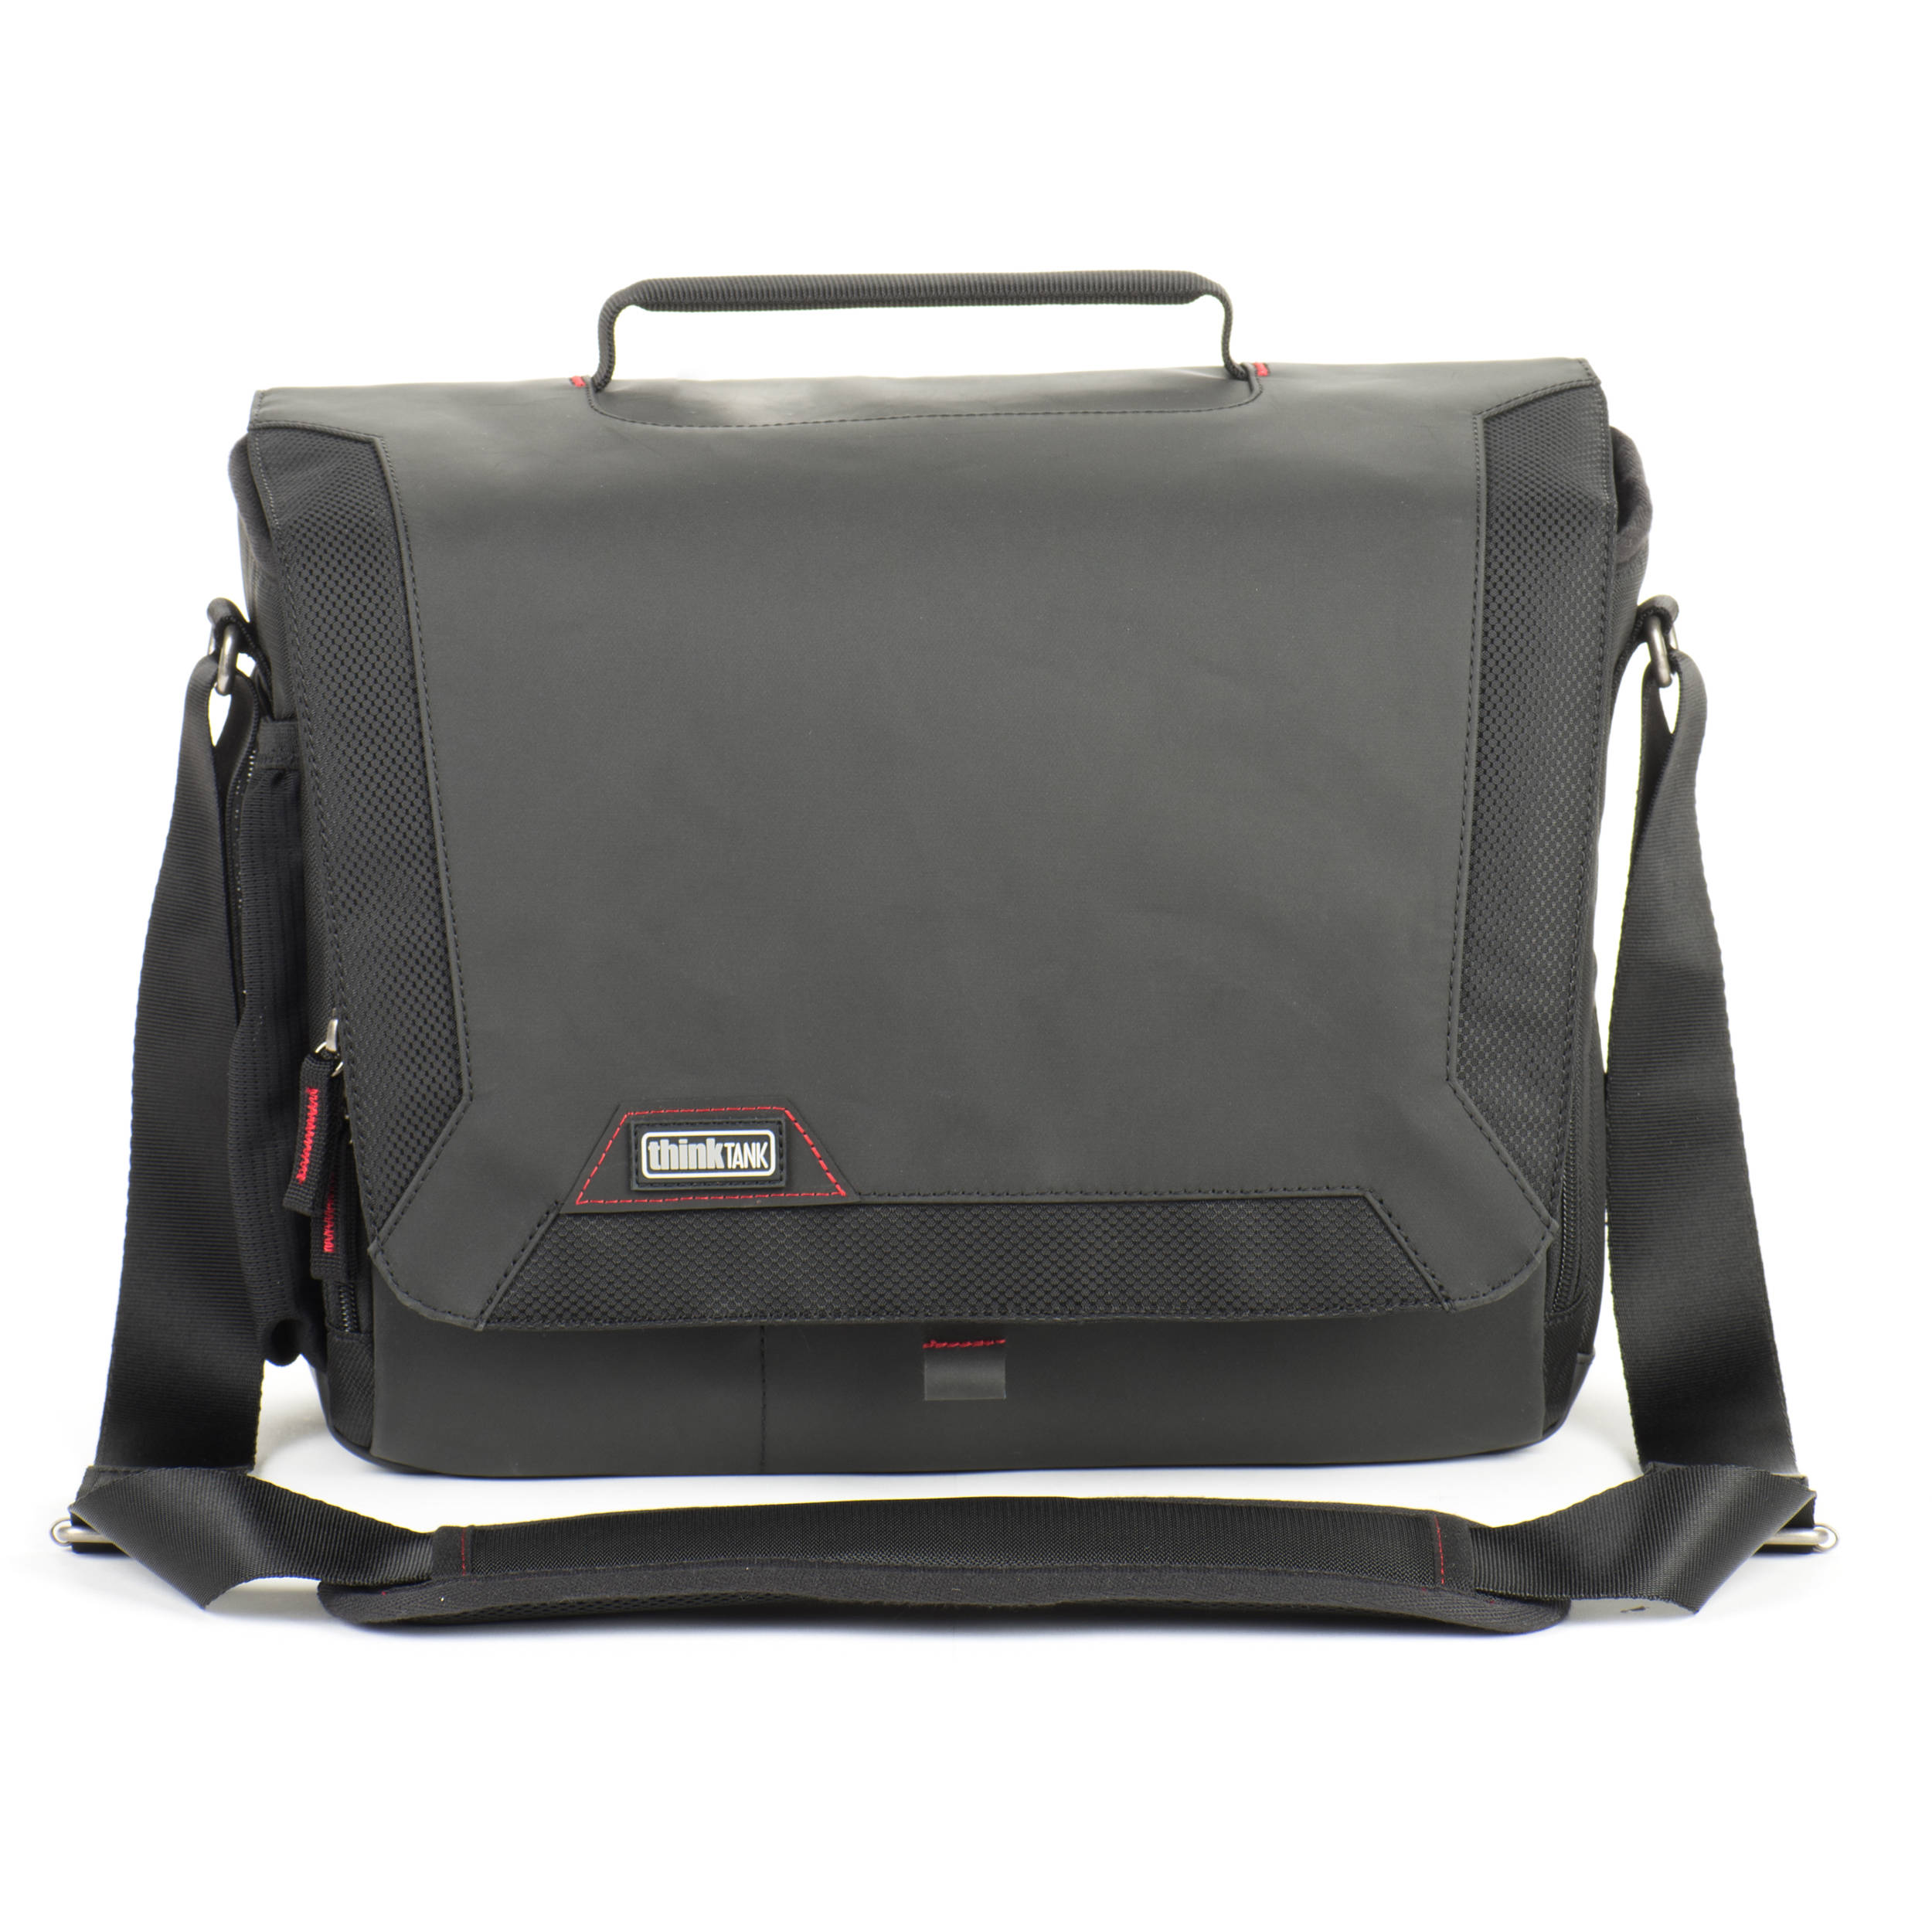 Think Tank Photo Spectral 10 Camera Shoulder Bag Black